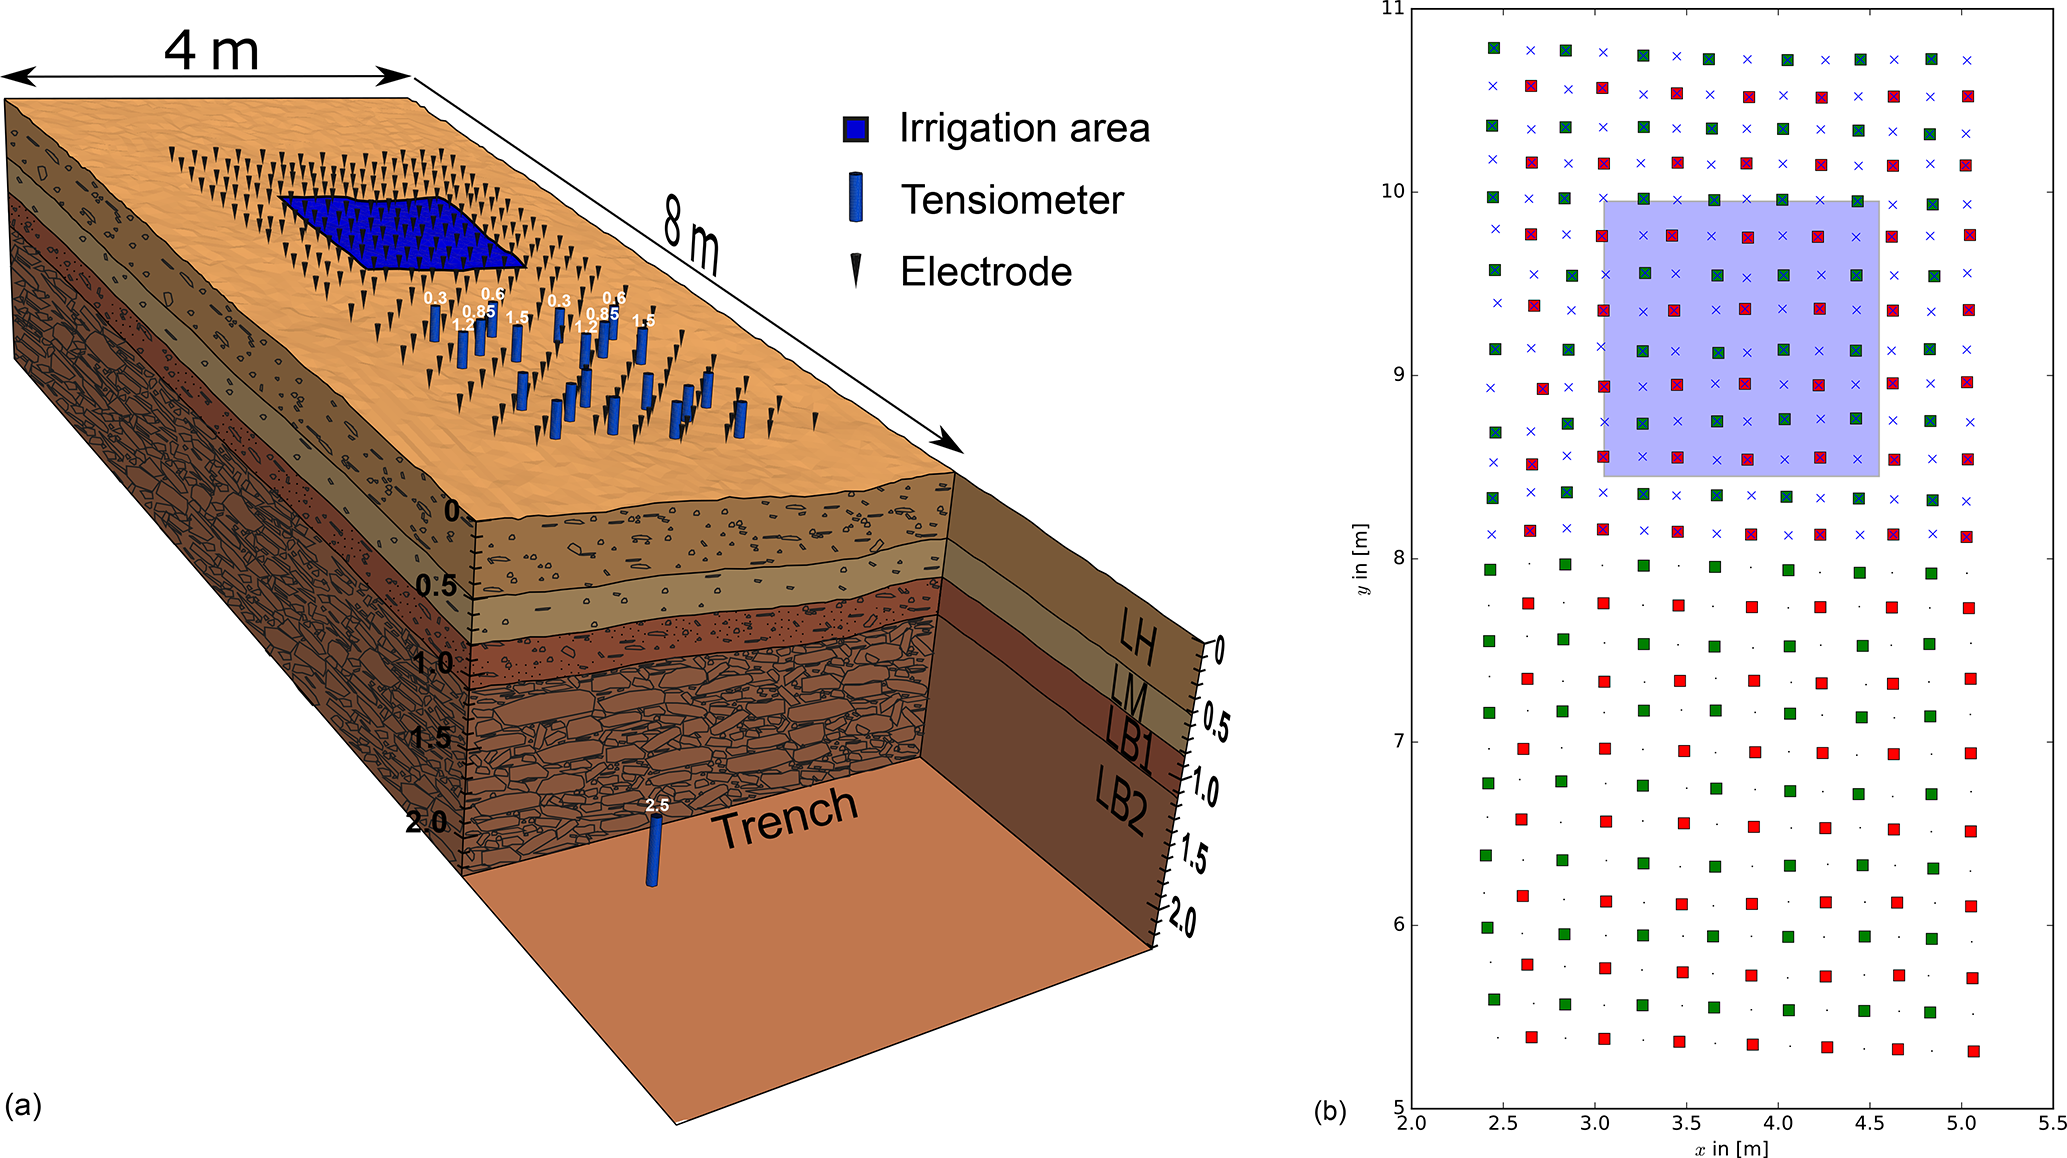 Conductivity Generalised Diagram To Give An Idea Of The German Trench Structure